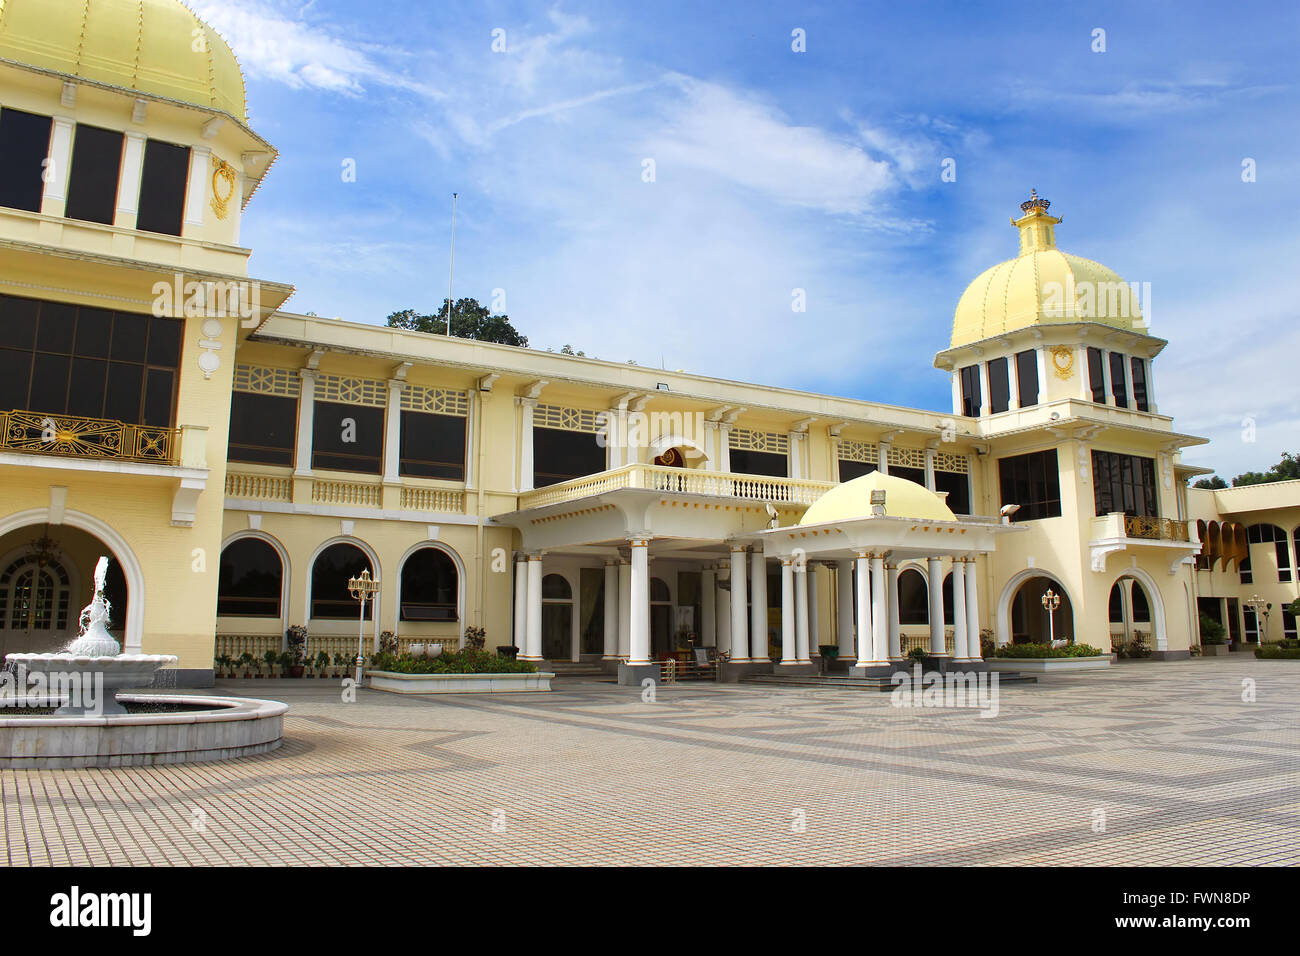 Malaysia old Royal Palace during its public open days in Kuala Lumpur, Malaysia - Stock Image